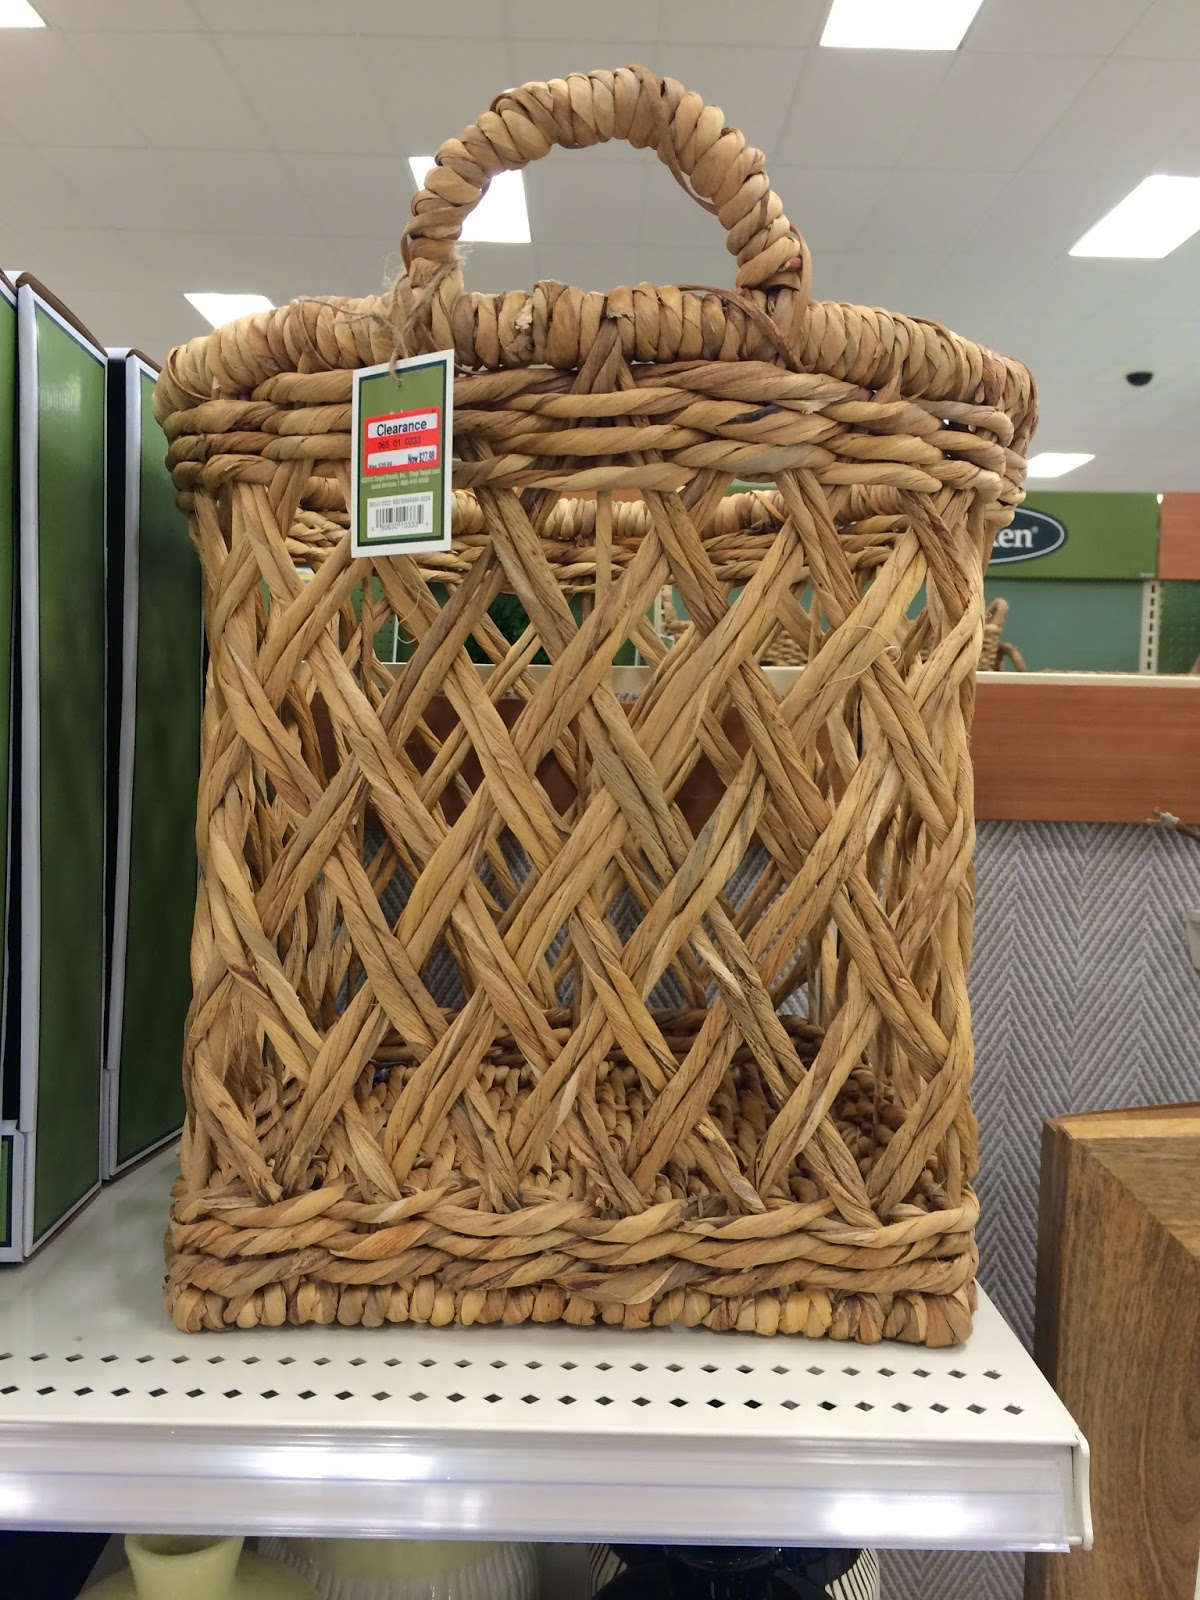 Some Friends Of Ours Have This Awesome Woven Basket With Painted Top In Their Gorgeous Home And I Had No Idea It Was From Target